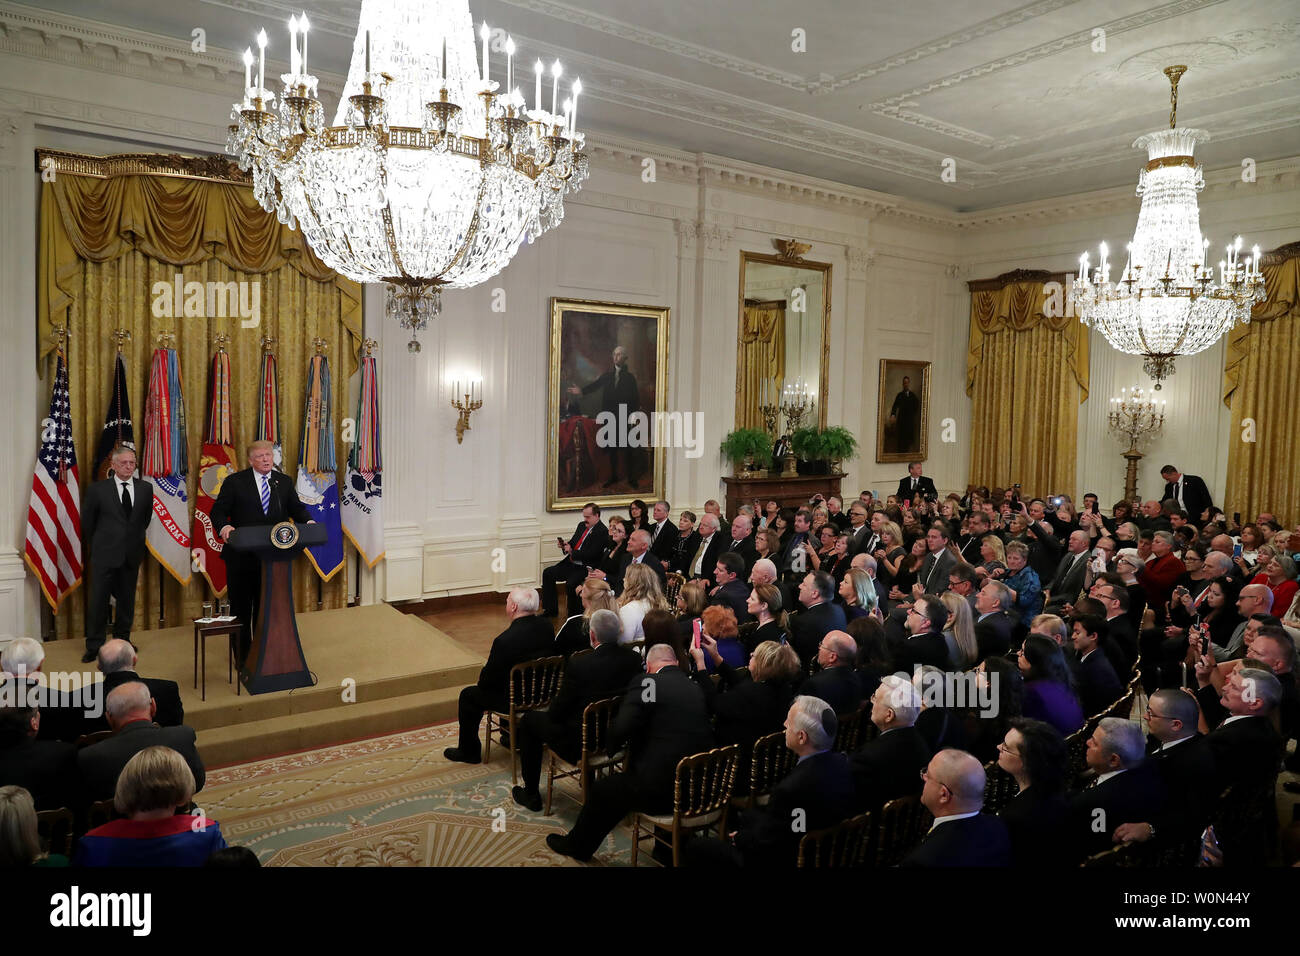 President Donald Trump hosts a reception commemorating the 35th anniversary of attack on the Beirut Barracks with Secretary of Defense James Mattis (L) in the East Room of the White House October 25, 2018 in Washington, DC. On October 23, 1983 two truck bombs struck the buildings housing Multinational Force in Lebanon (MNF) peacekeepers, killing 241 U.S. and 58 French peacekeepers and 6 civilians.   Photo by Chip Somodevilla/UPI Stock Photo